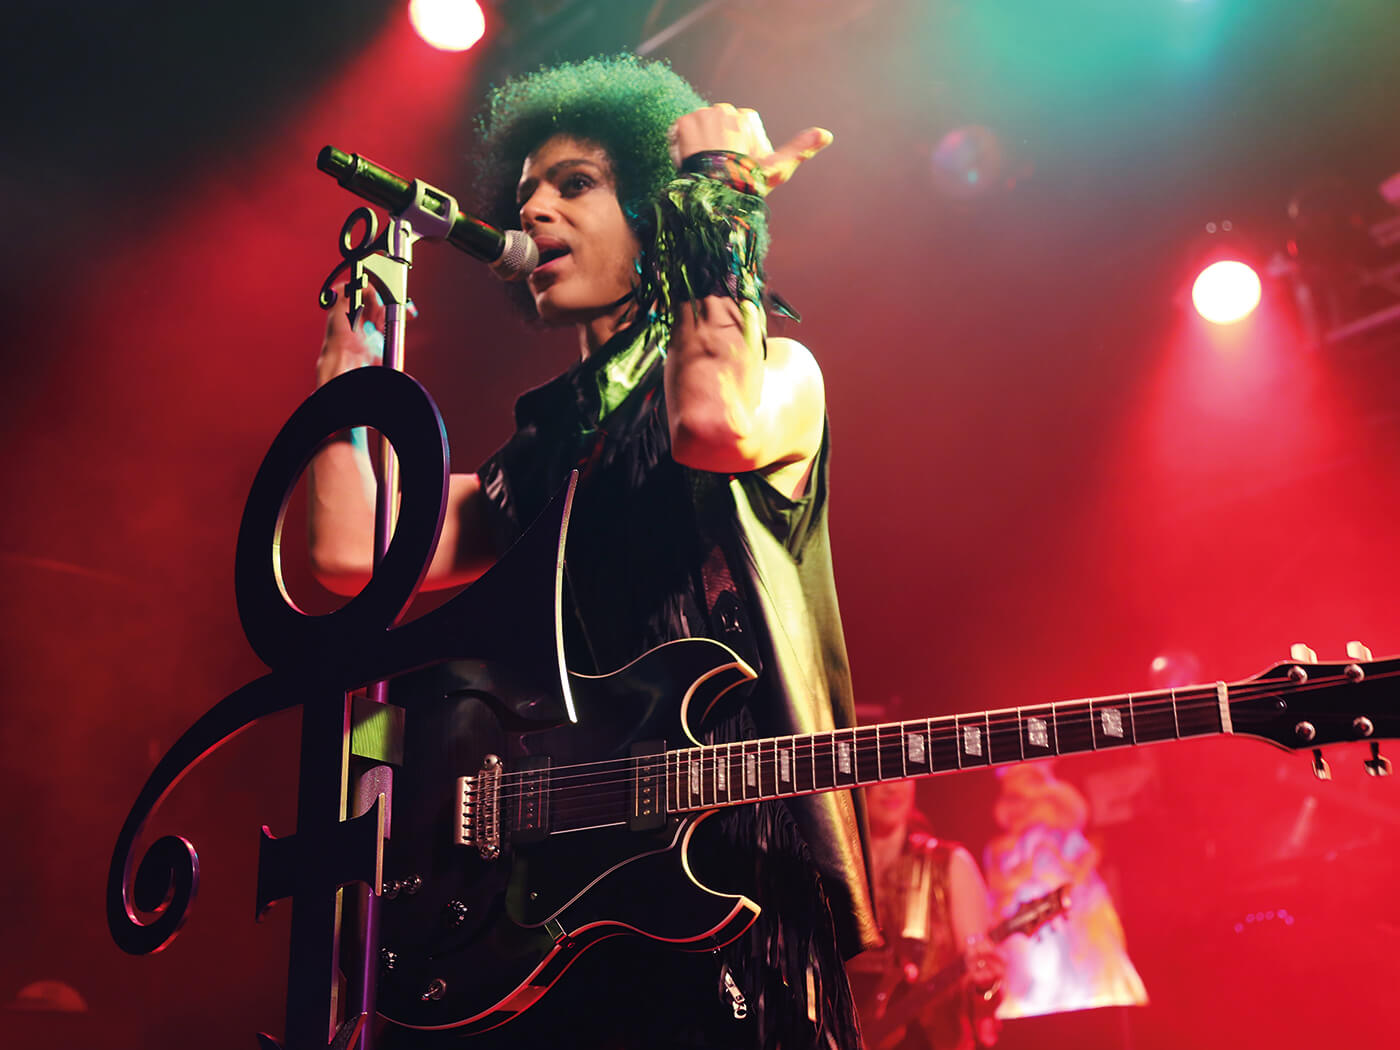 Prince in The Electric Ballroom